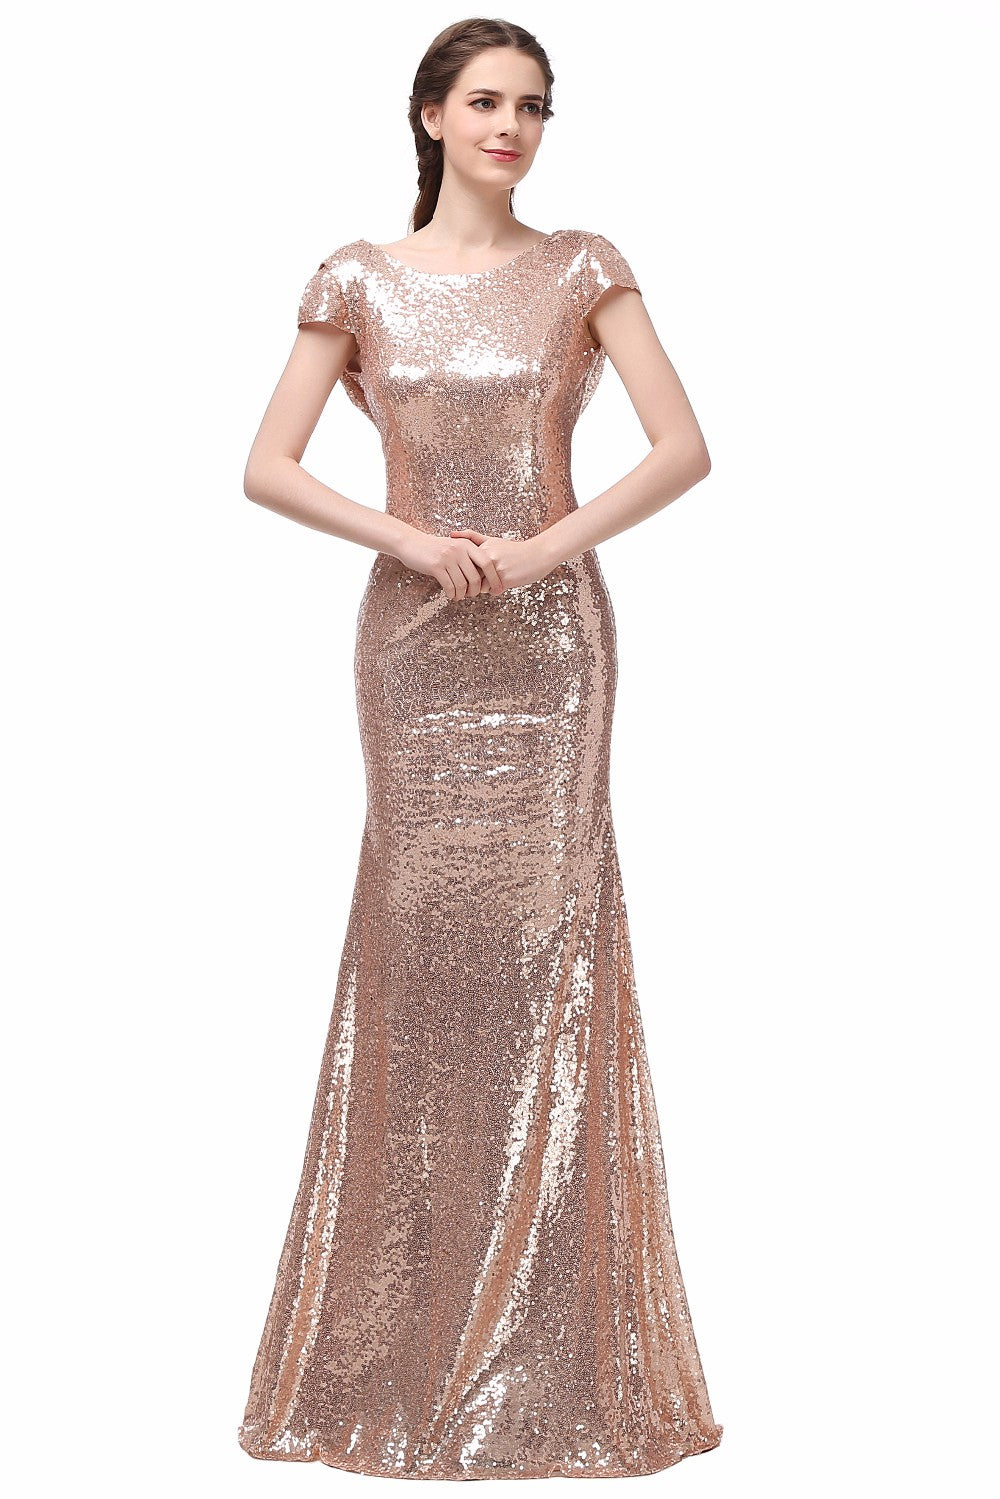 Costbuys  Champagne Gold Sequin Bridesmaid Dresses Long Wedding Party Dress - Champagne / 10